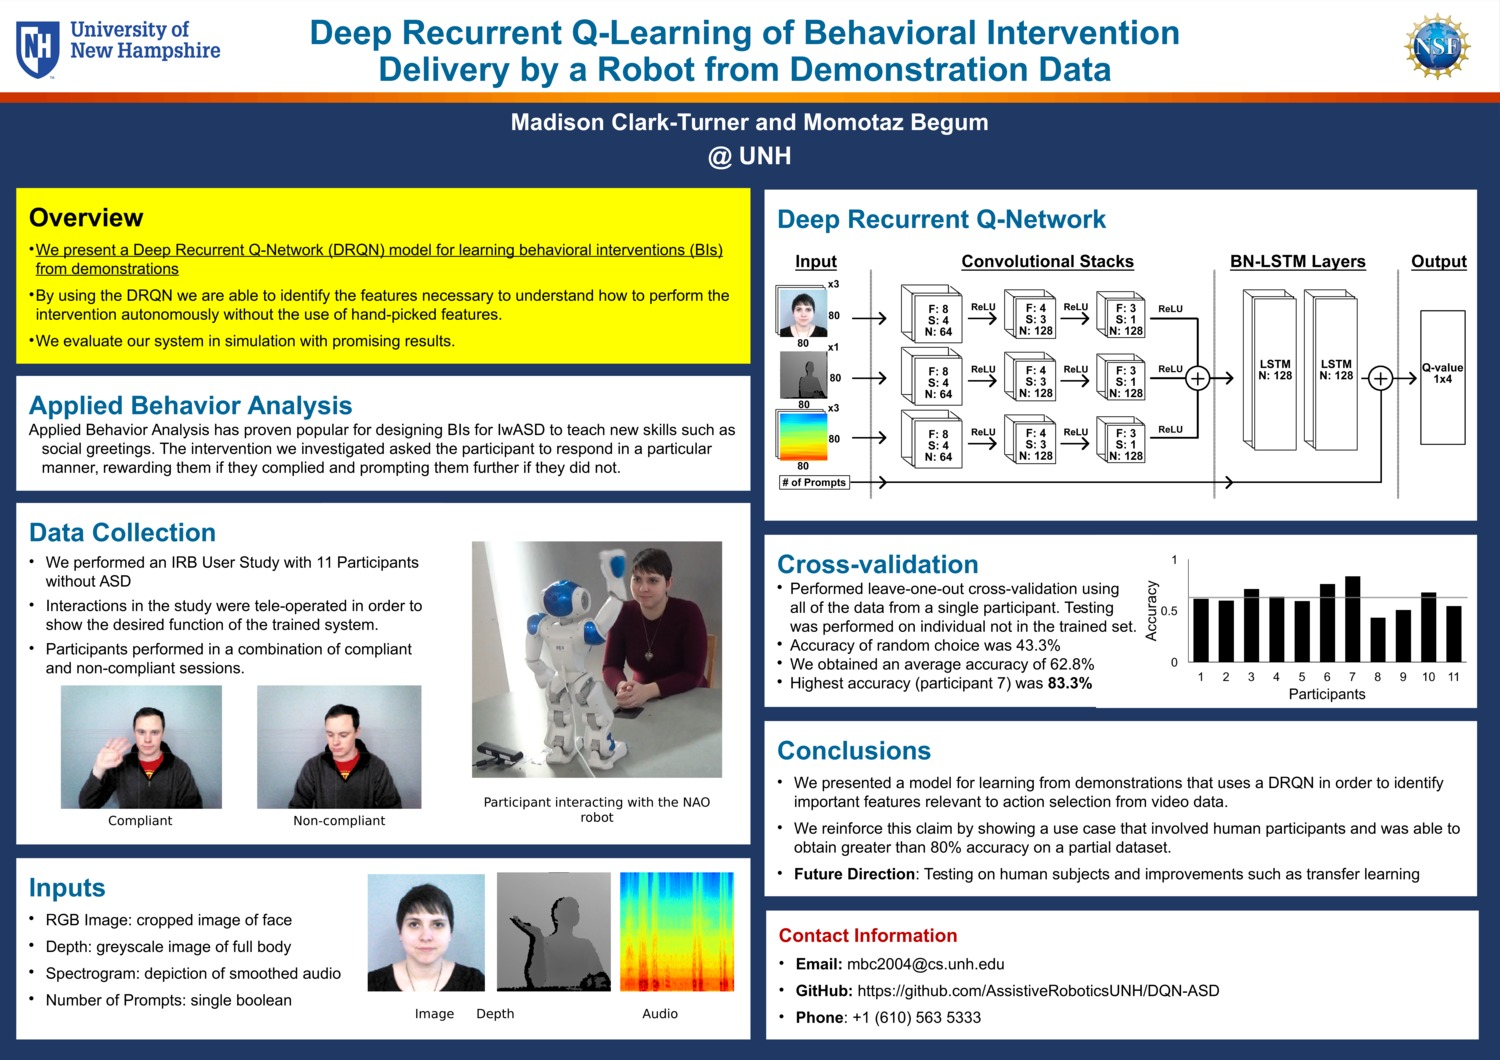 Deep Recurrent Q-Learning Of Behavioral Intervention  Delivery By A Robot From Demonstration Data  by mbc2004